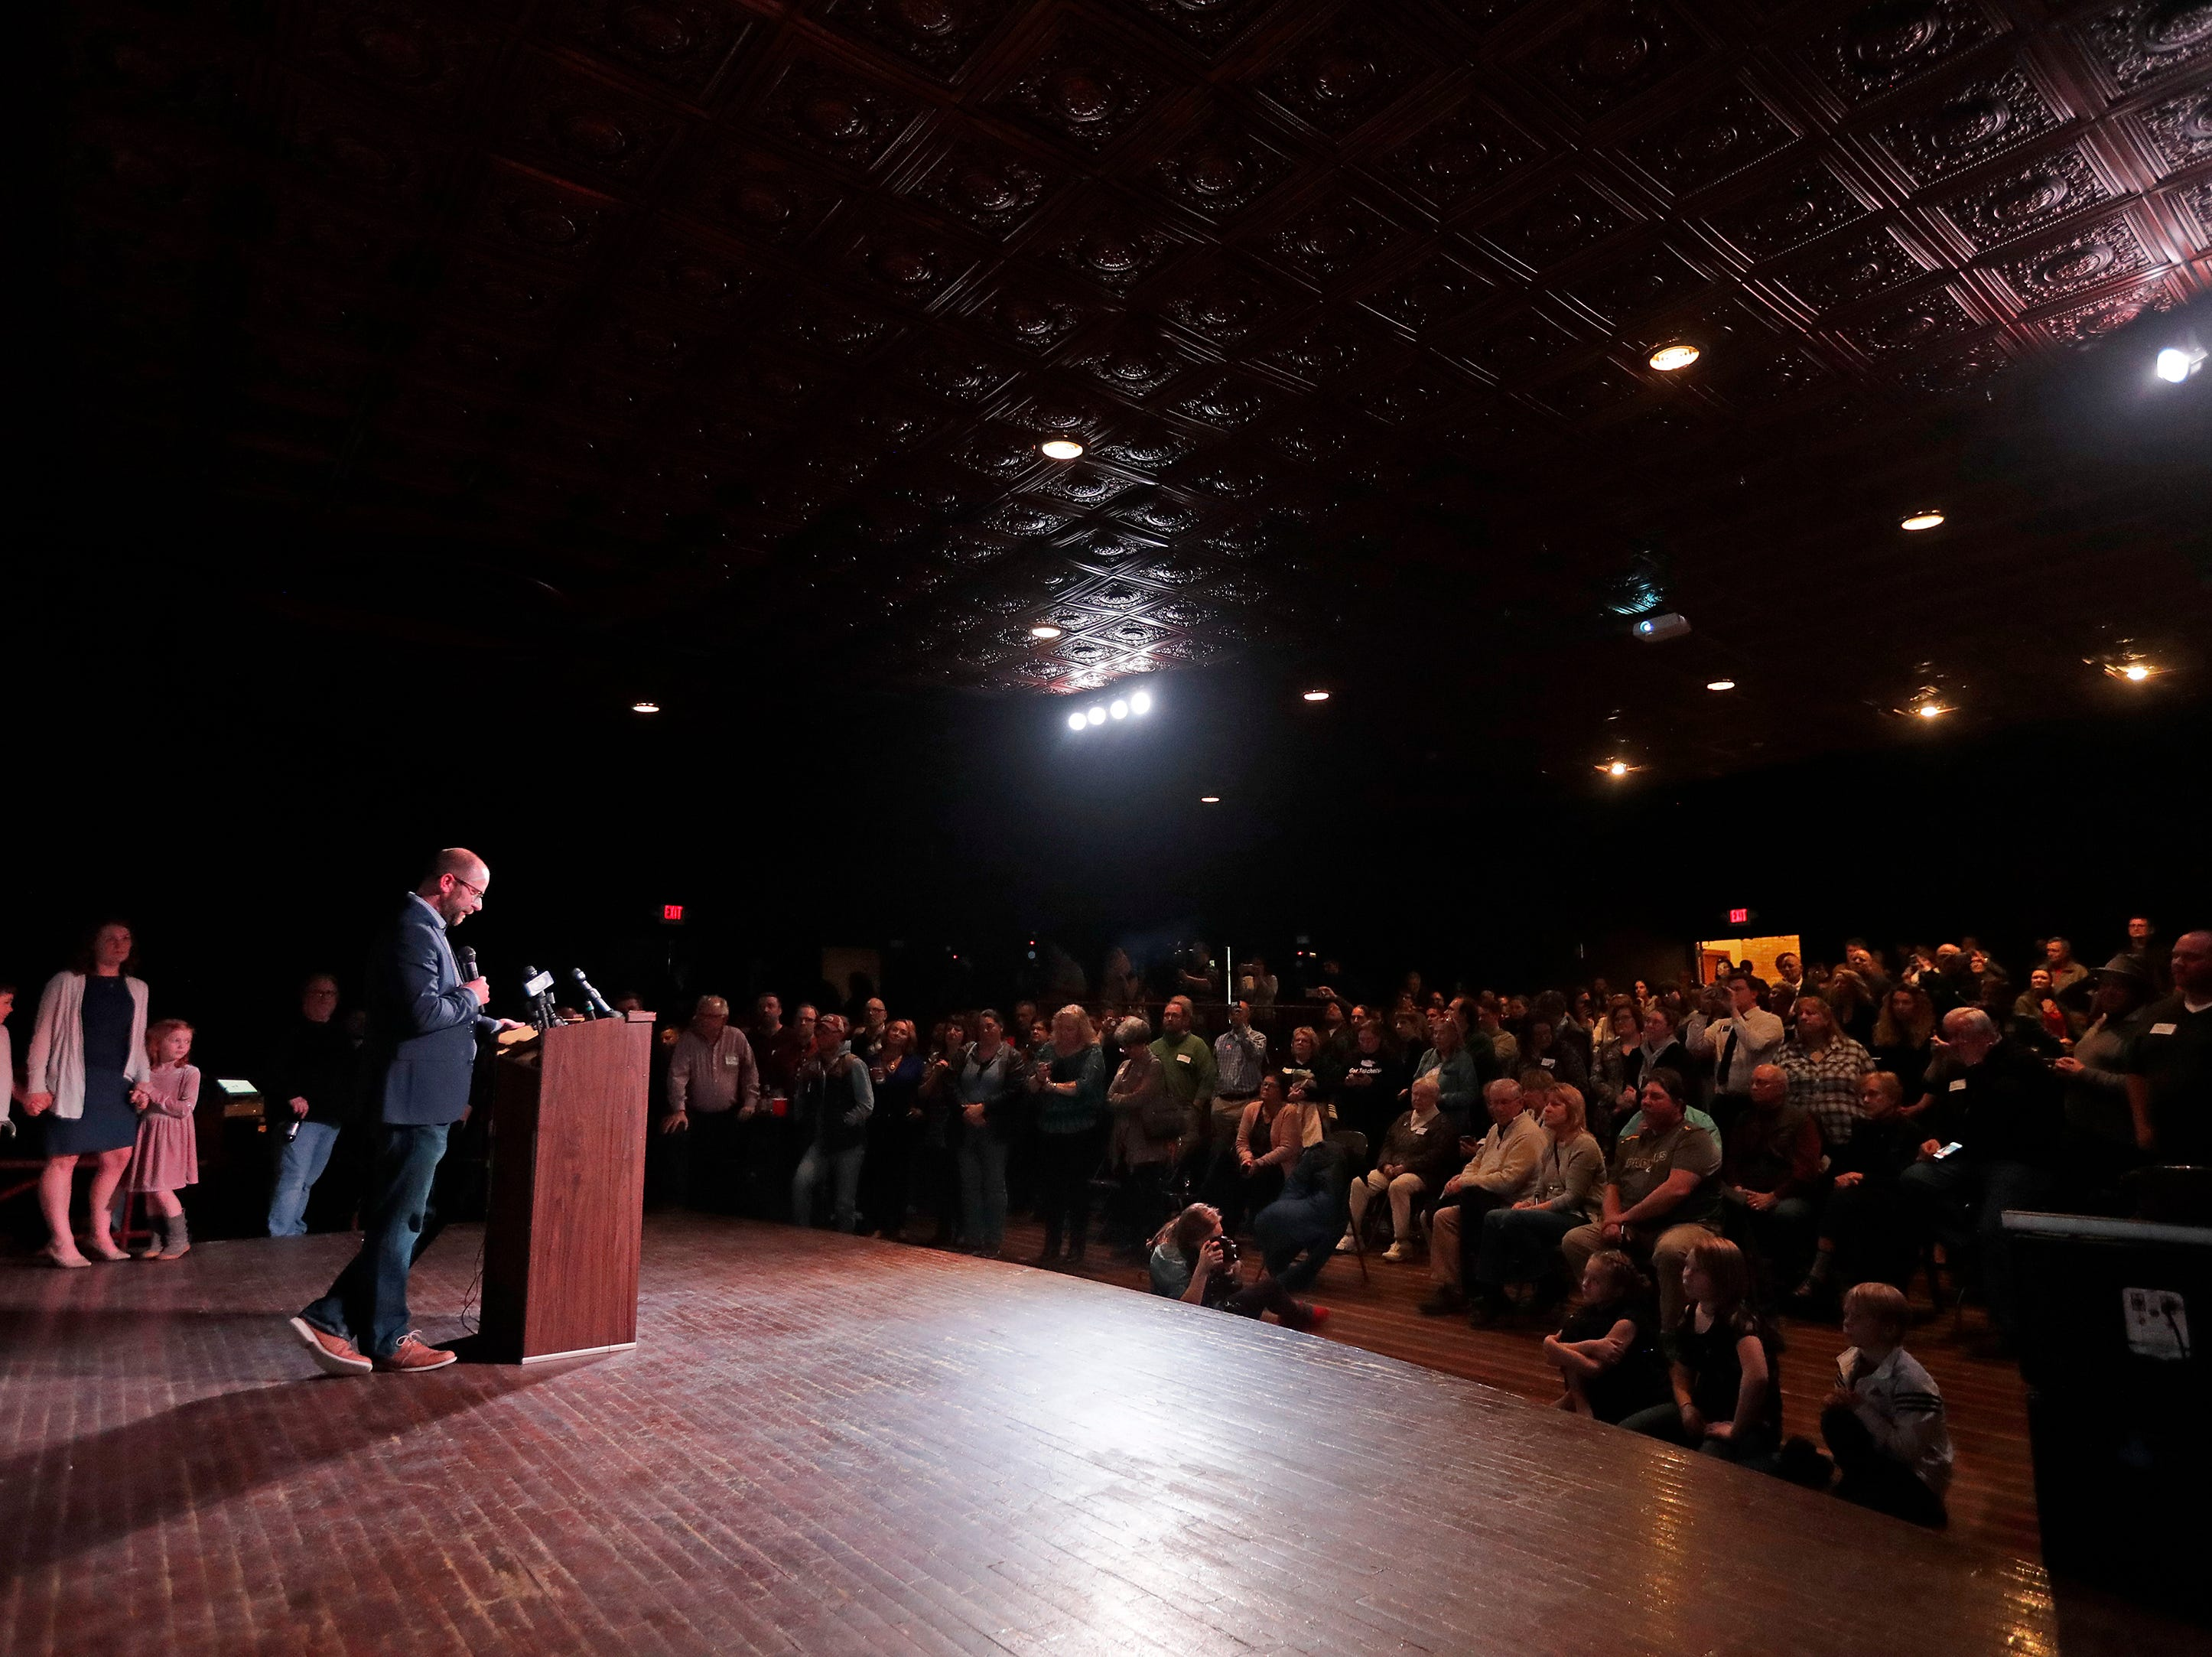 Mayor-elect Eric Genrich speaks to his supporters at the Tarlton Theater on Tuesday, April 2, 2019 in Green Bay, Wis.